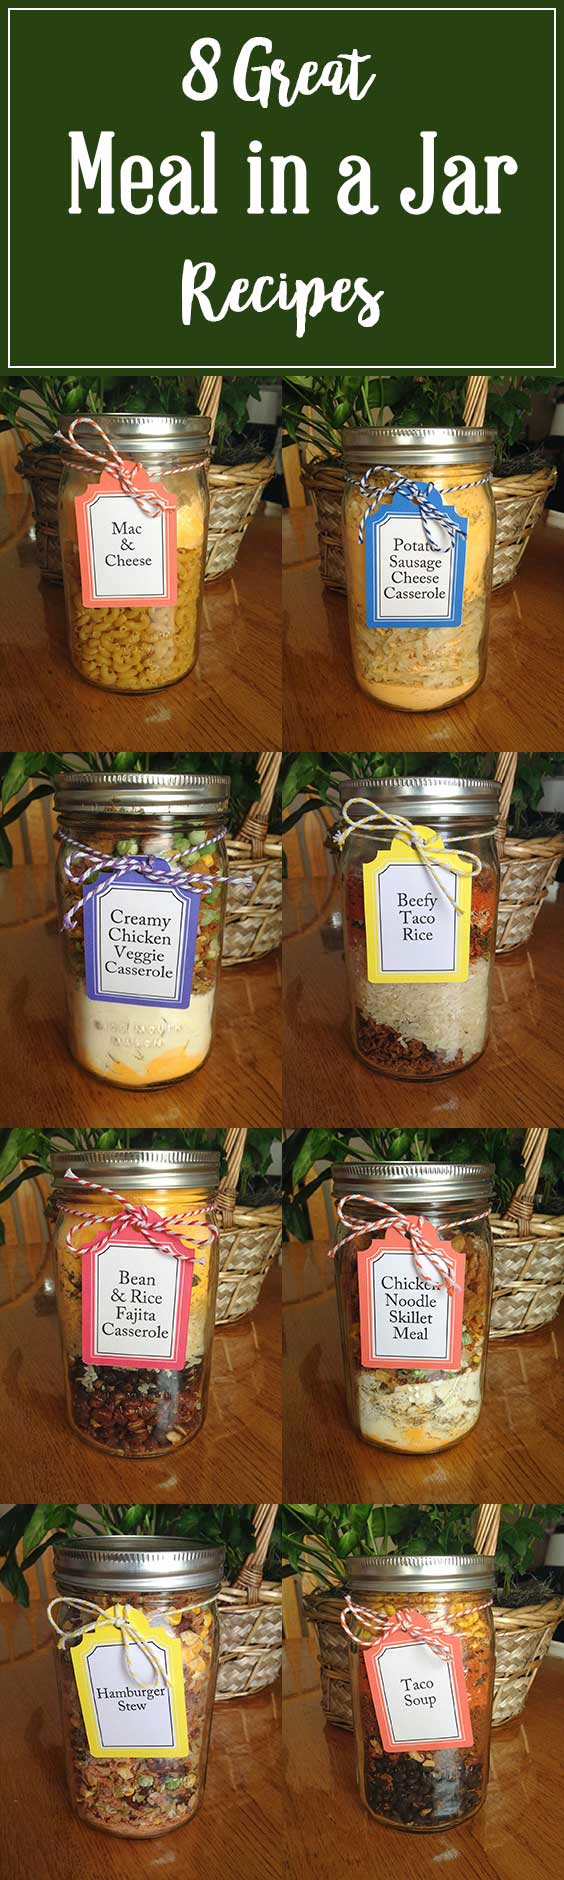 Eight Great Meal in a Jar Recipes